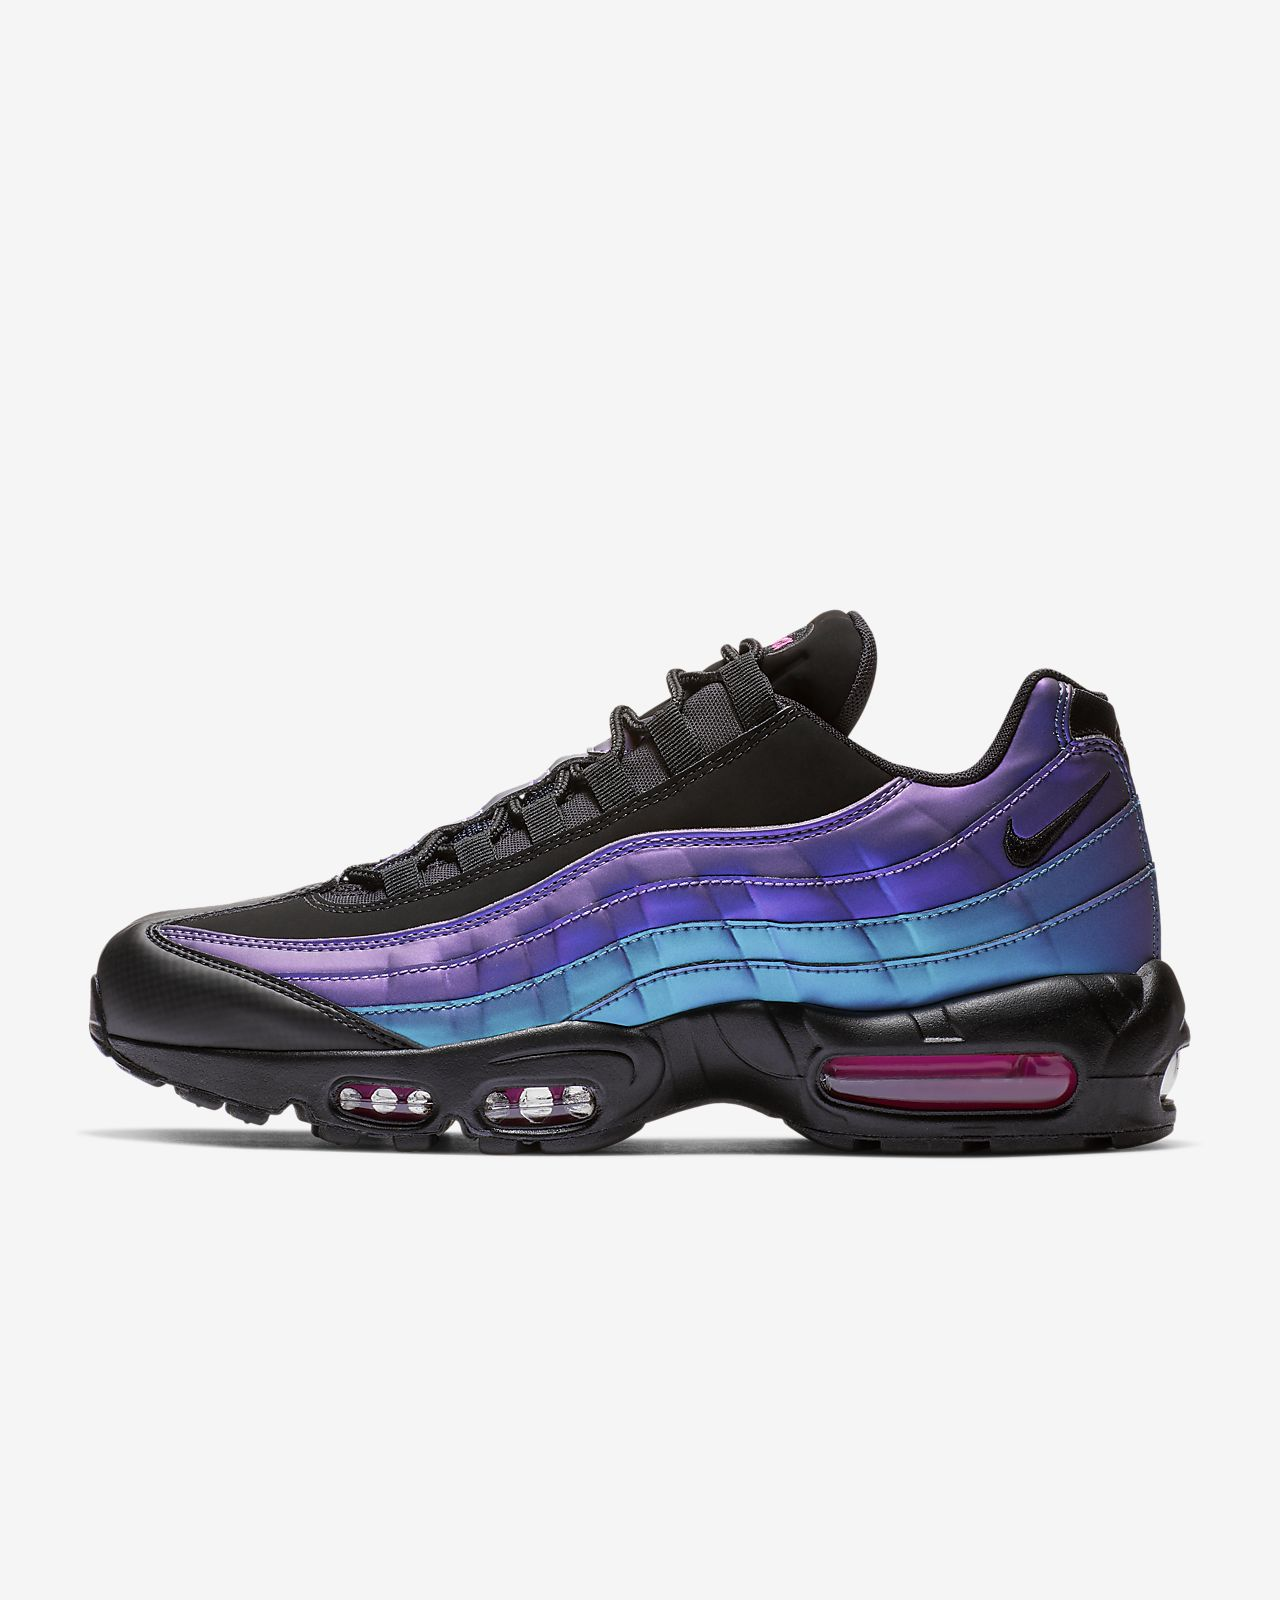 reputable site c5129 4bbbb Men s Shoe. Nike Air Max 95 Premium